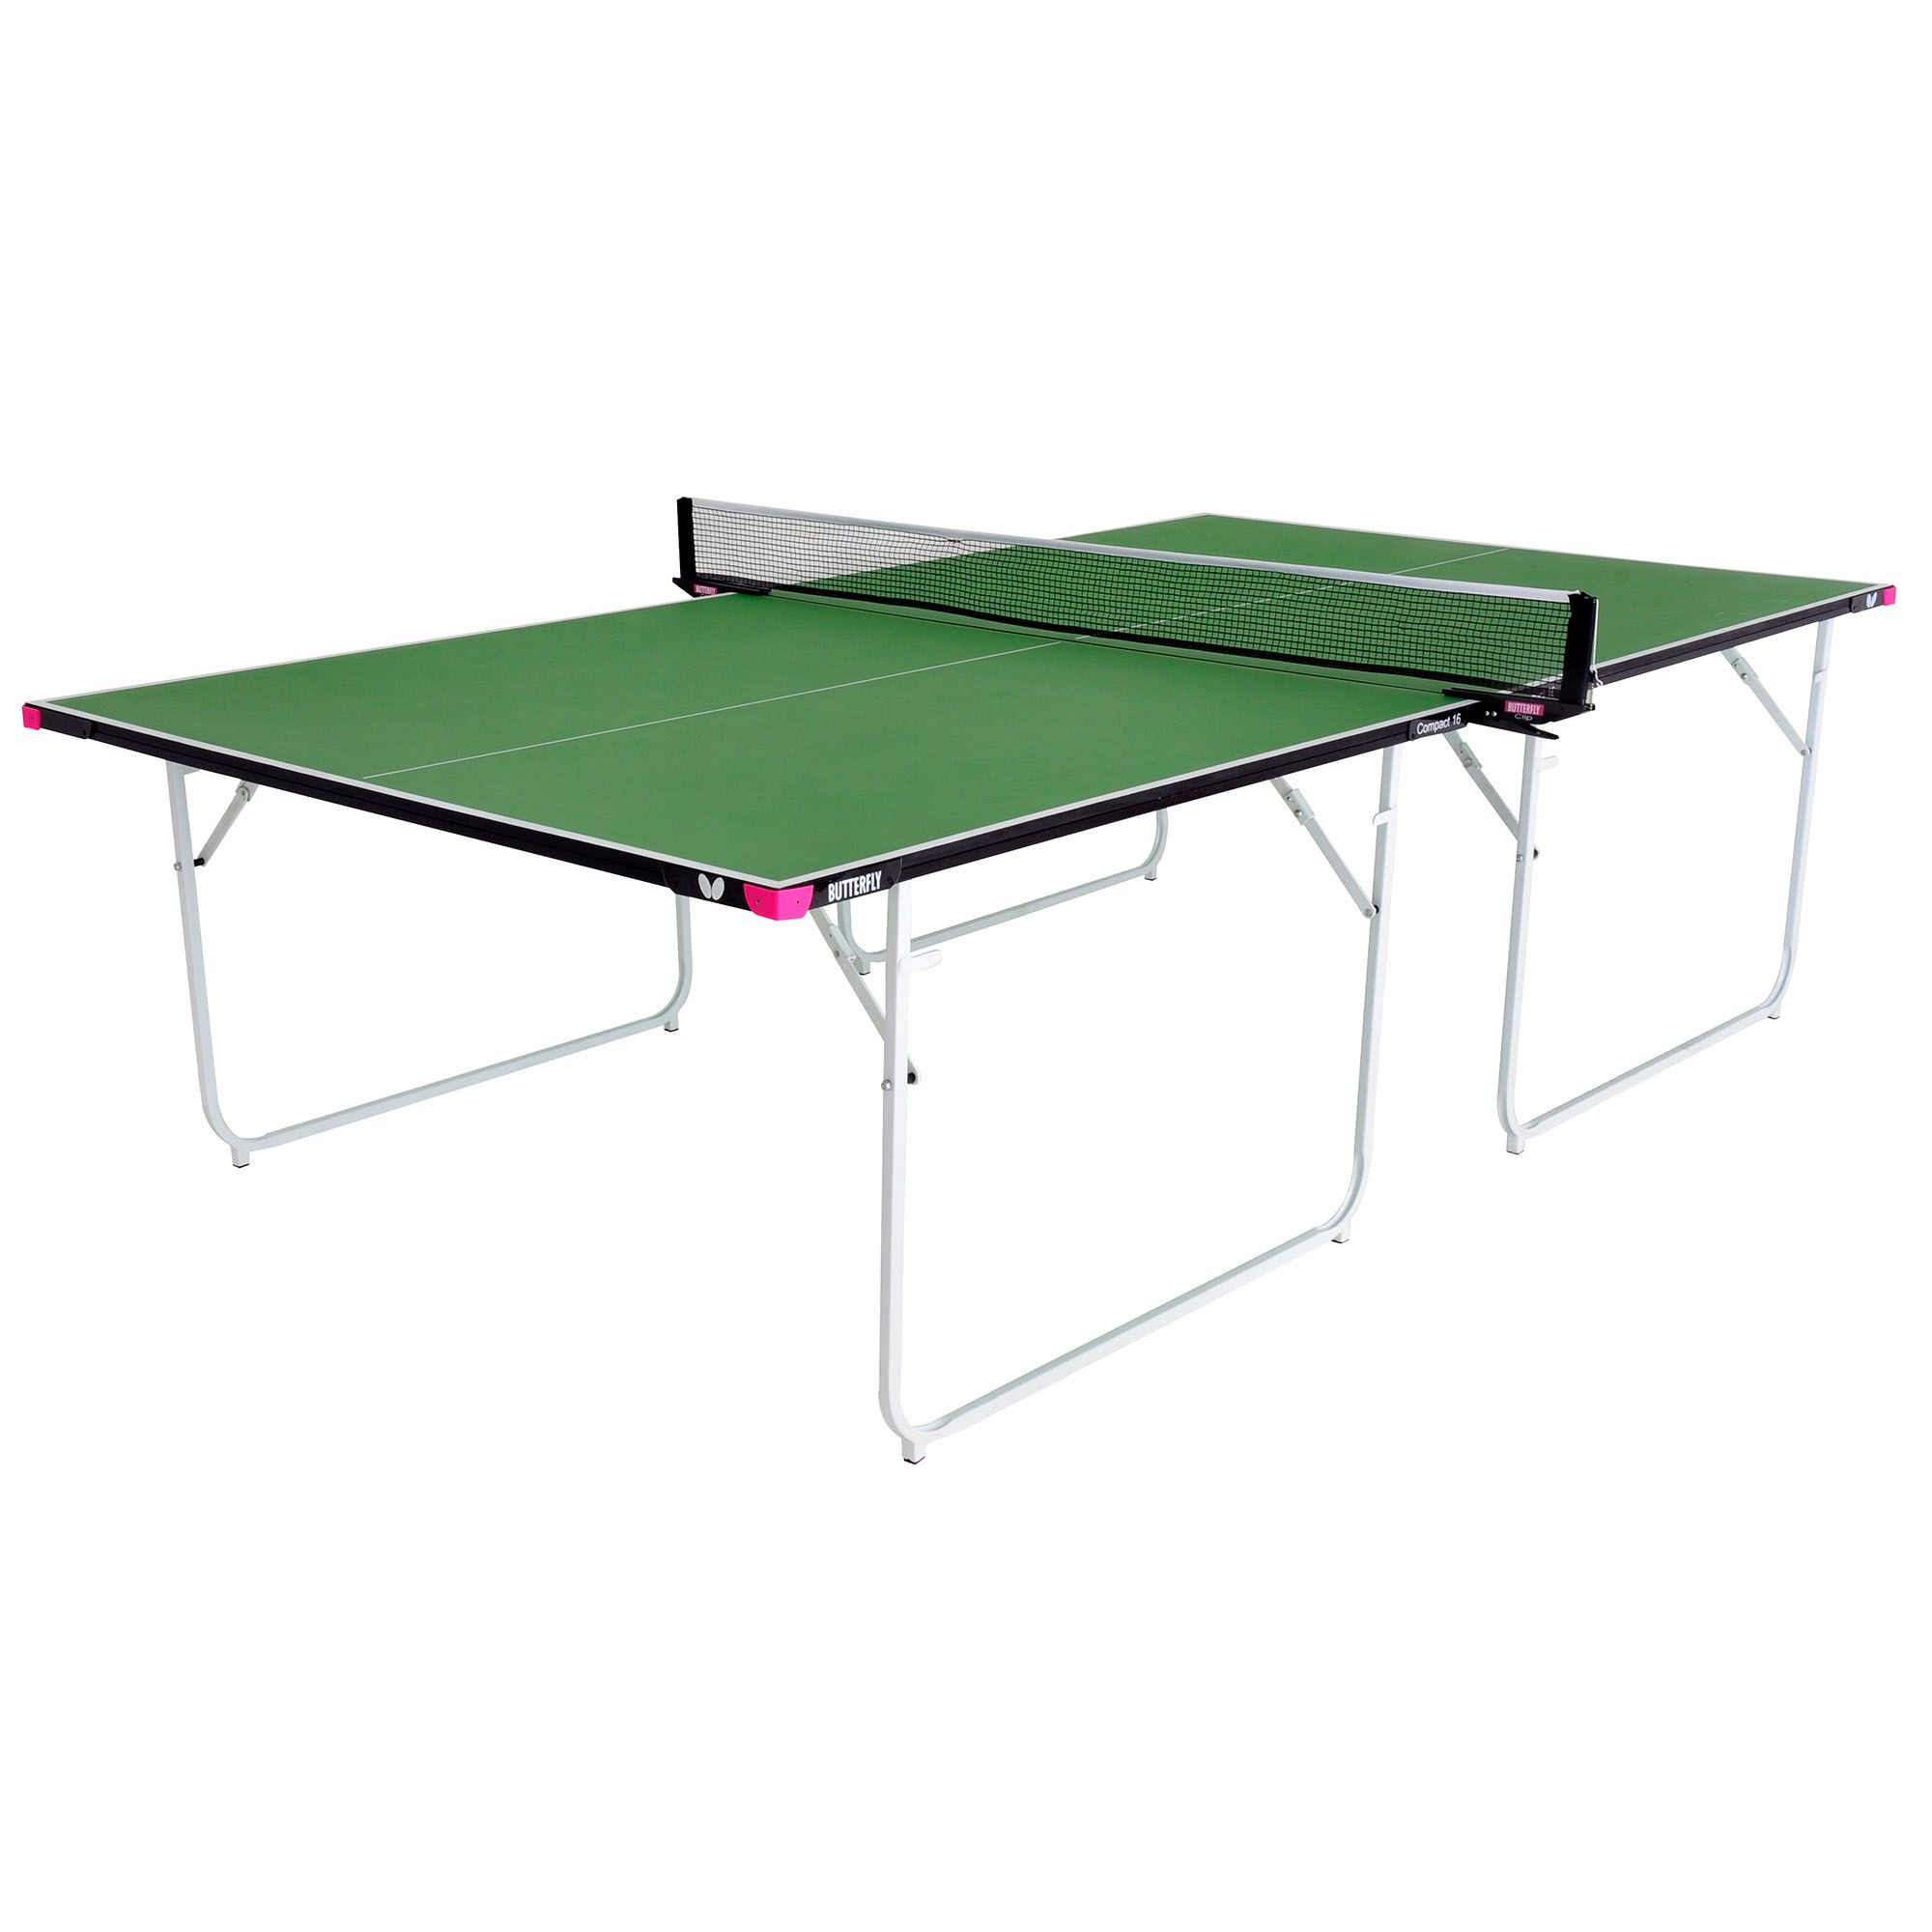 Butterfly compact 16 indoor table tennis table - Butterfly tennis de table ...